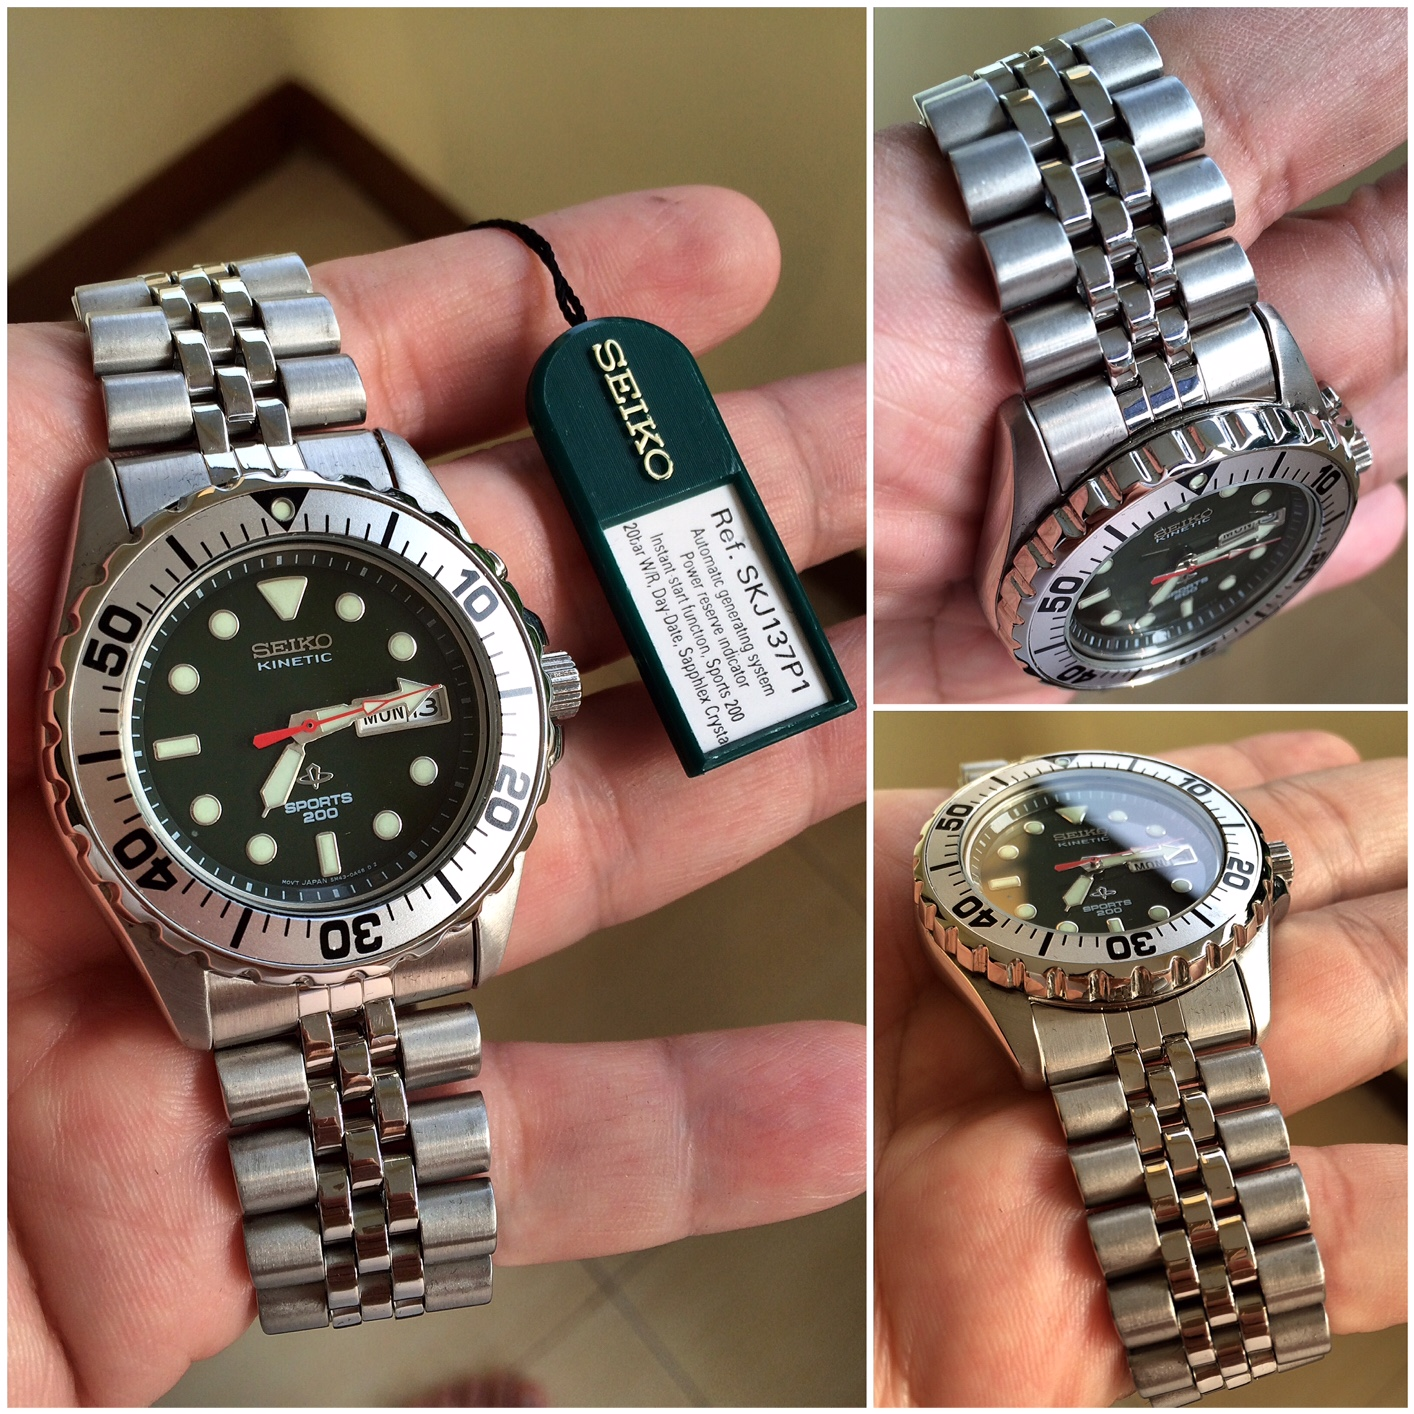 [For Sale] Seiko Deep Green Kinetic, SKJ137, Jubilee Bracelet, NOS, Fullset, Rare...